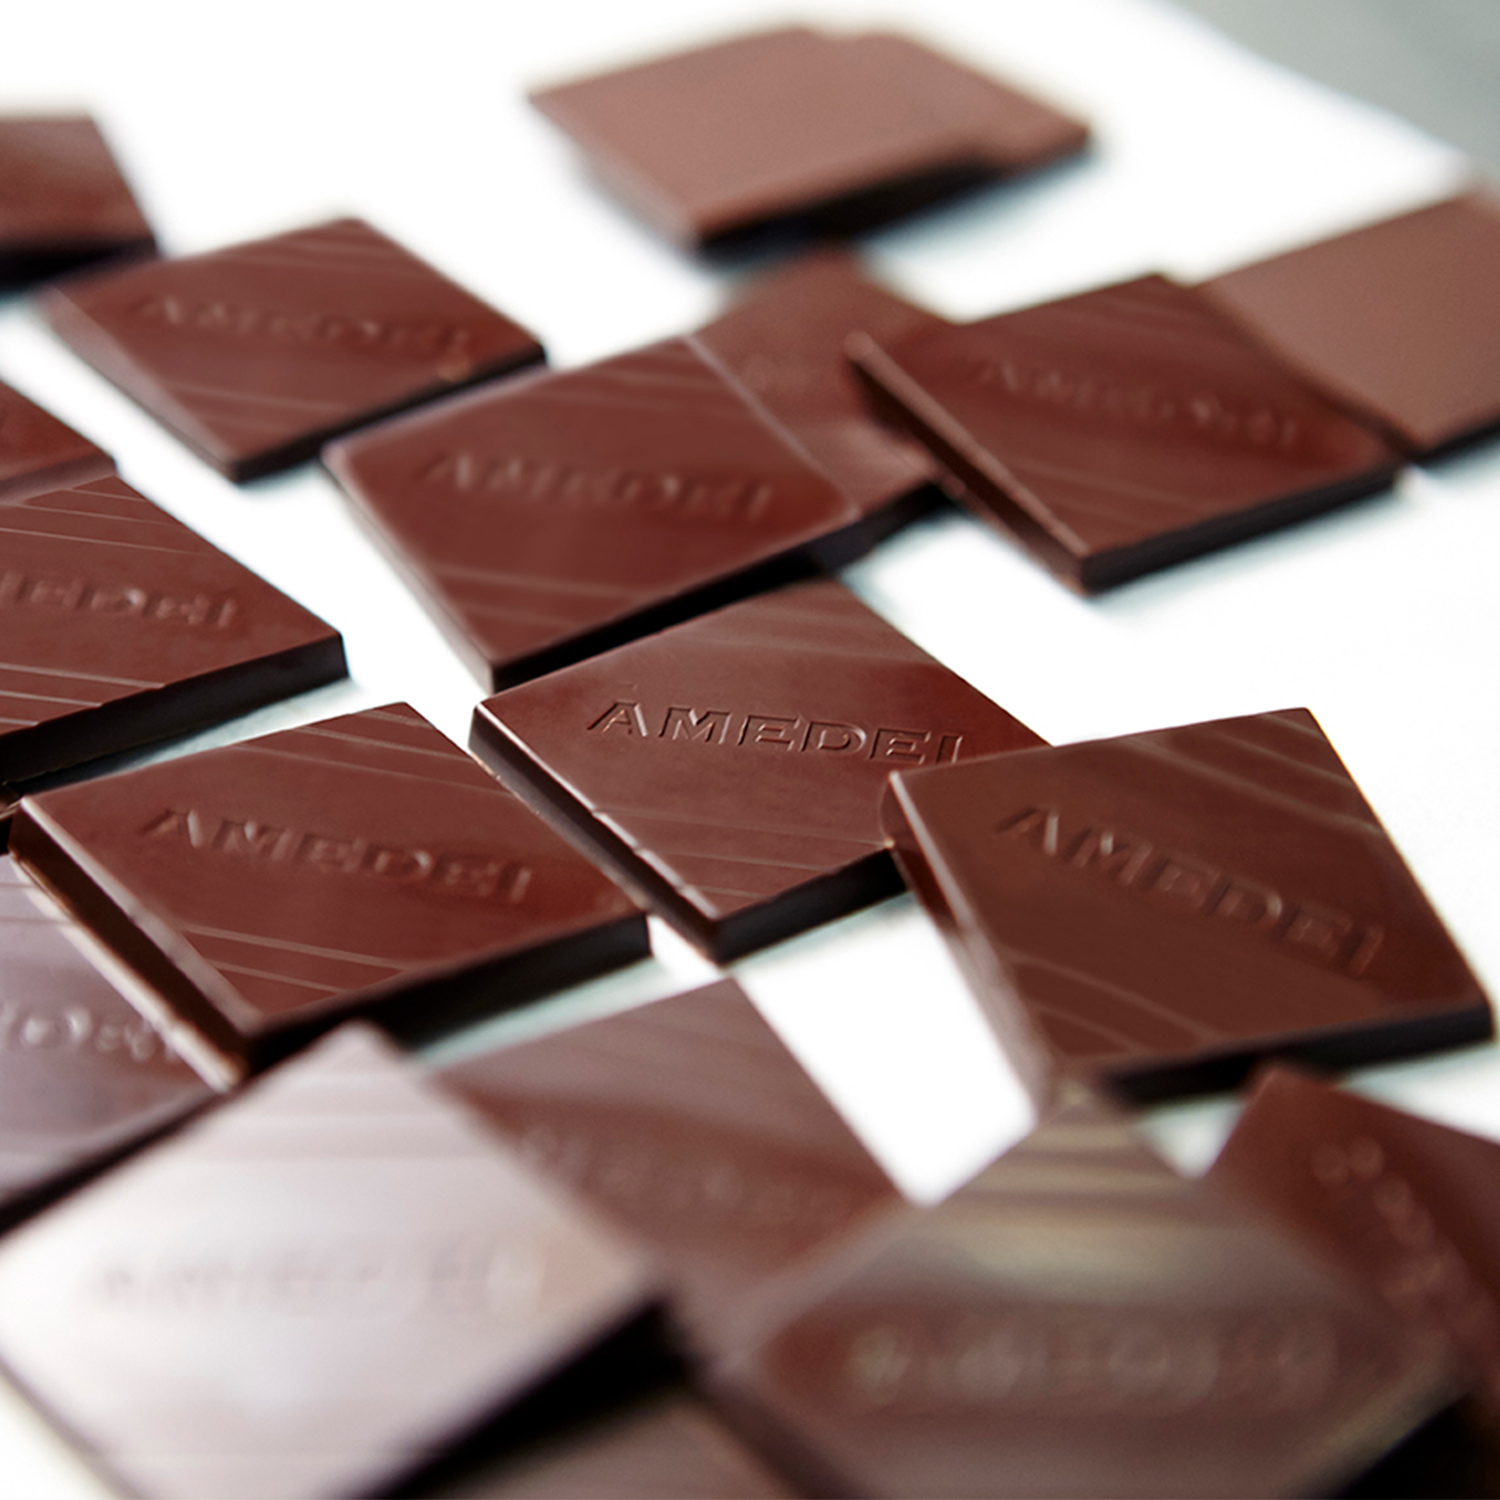 Amedei_chocolate visual design